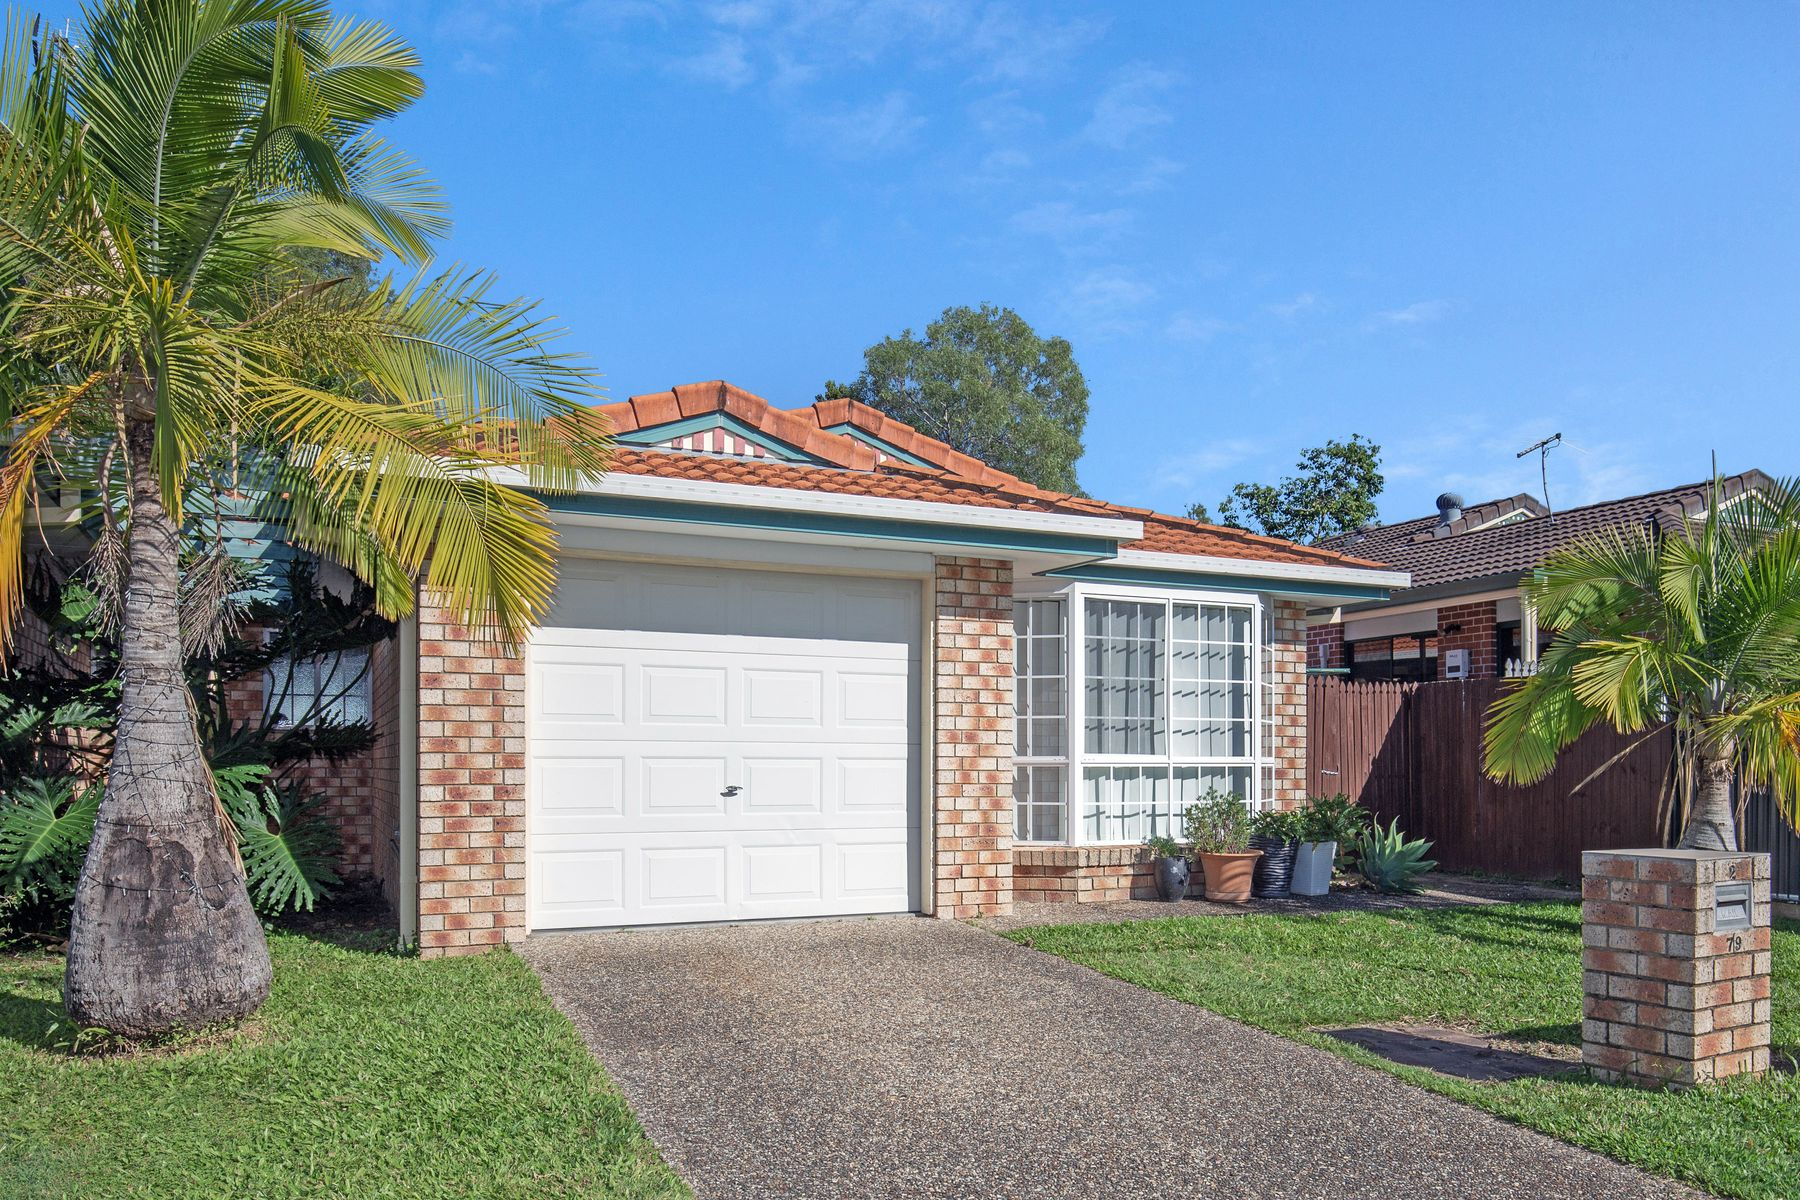 2/79 Cootharaba Drive, Helensvale, QLD 4212